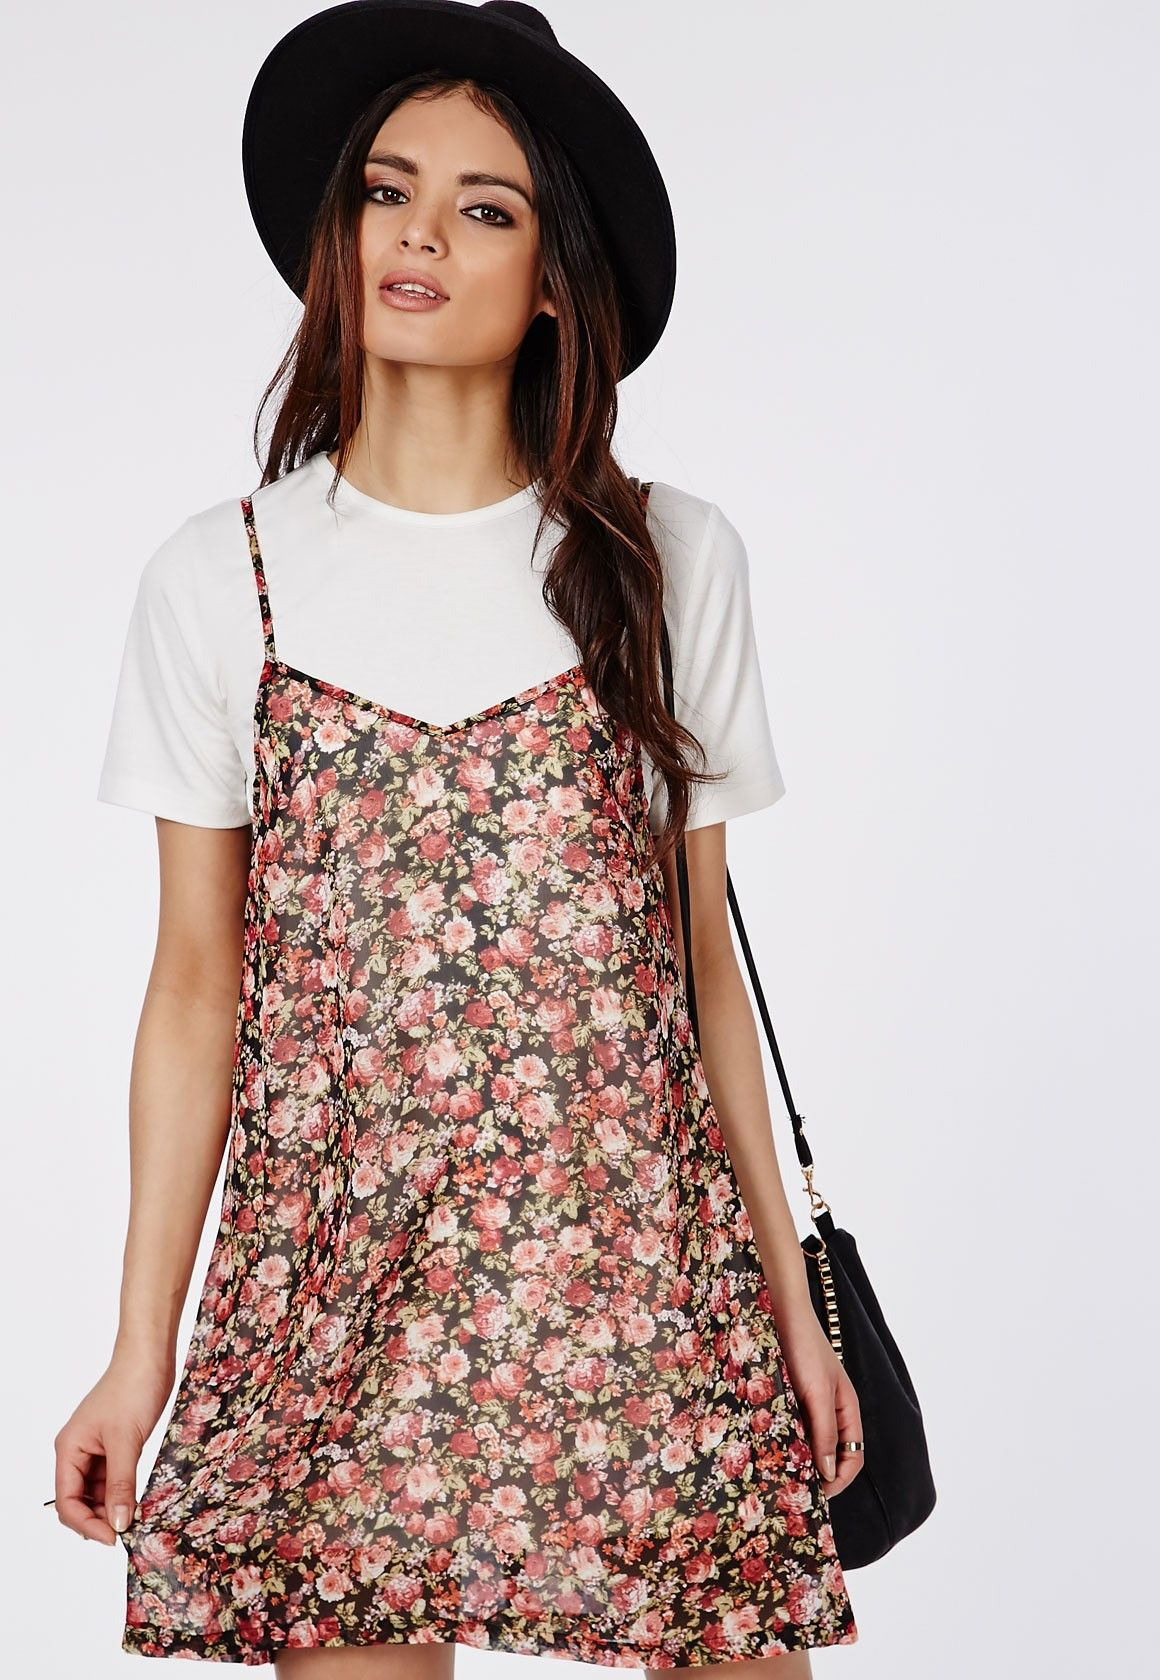 Floral swing dress with white tshirt underlay